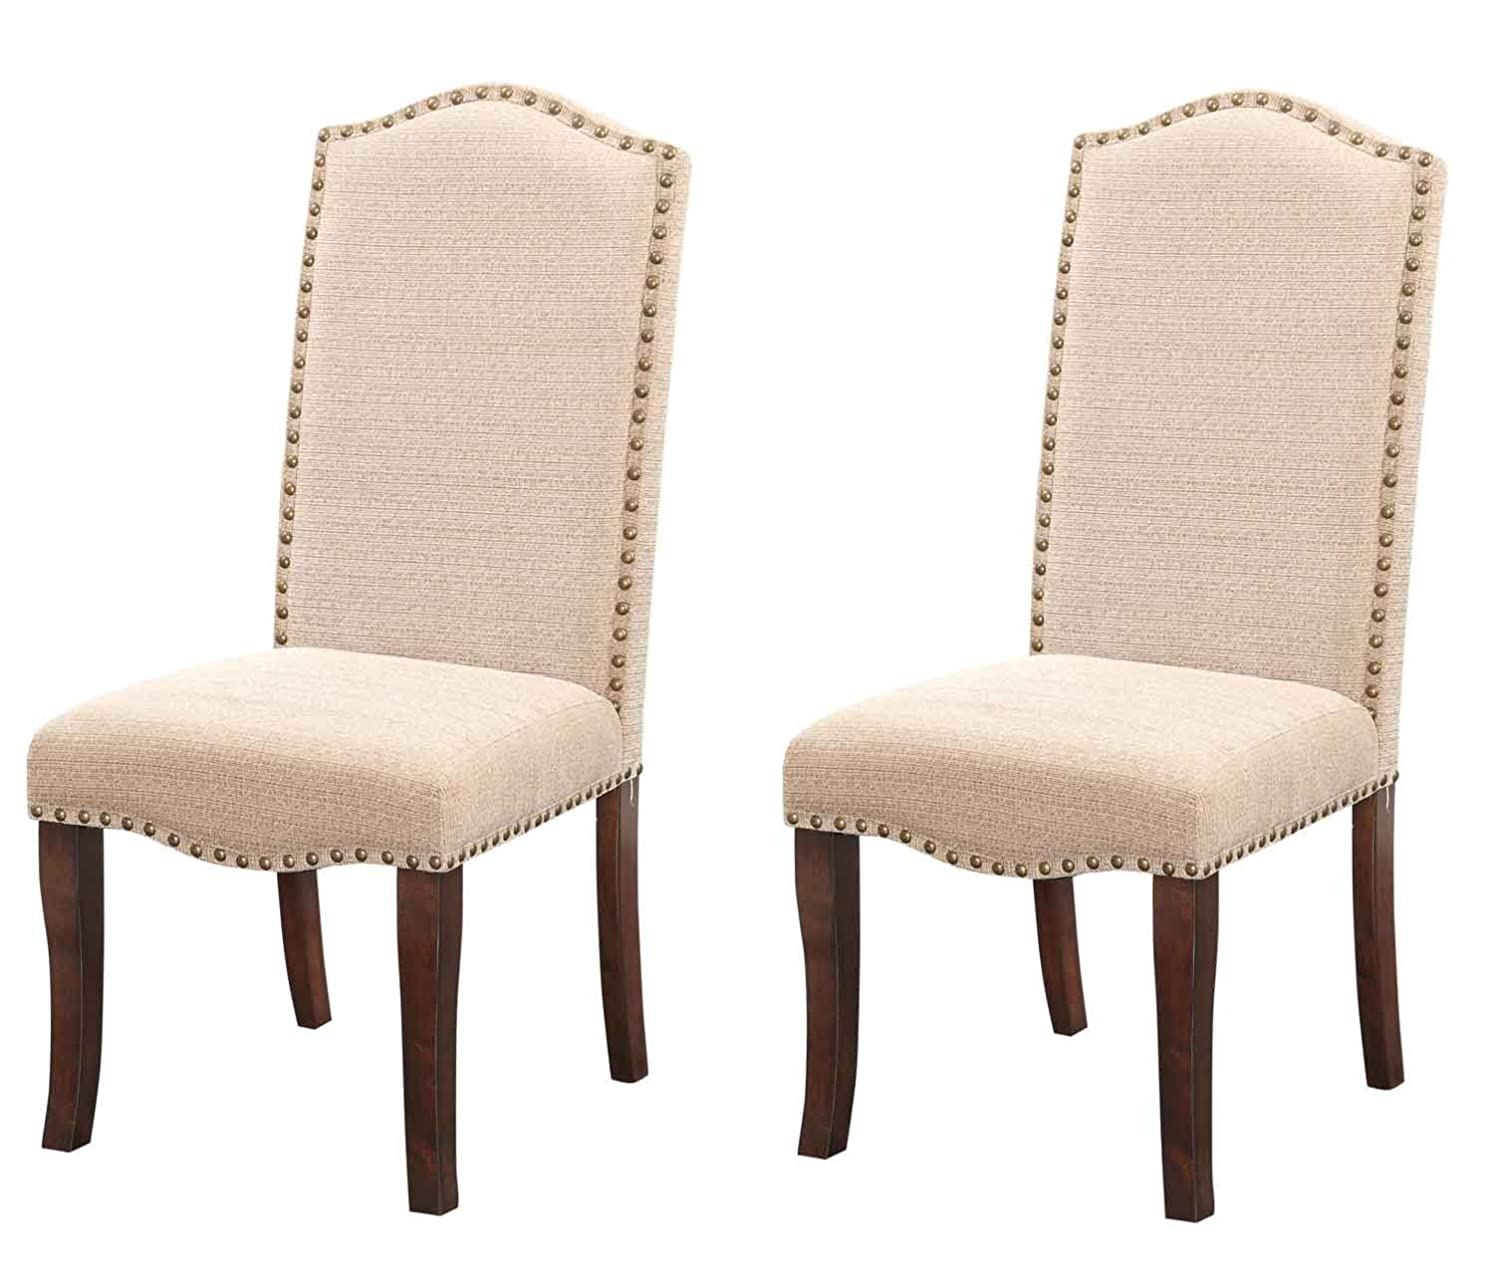 Set of 2 Kings Brand Furniture Cream White Nailhead Trim Upholstered Dinette Dining Room Chairs